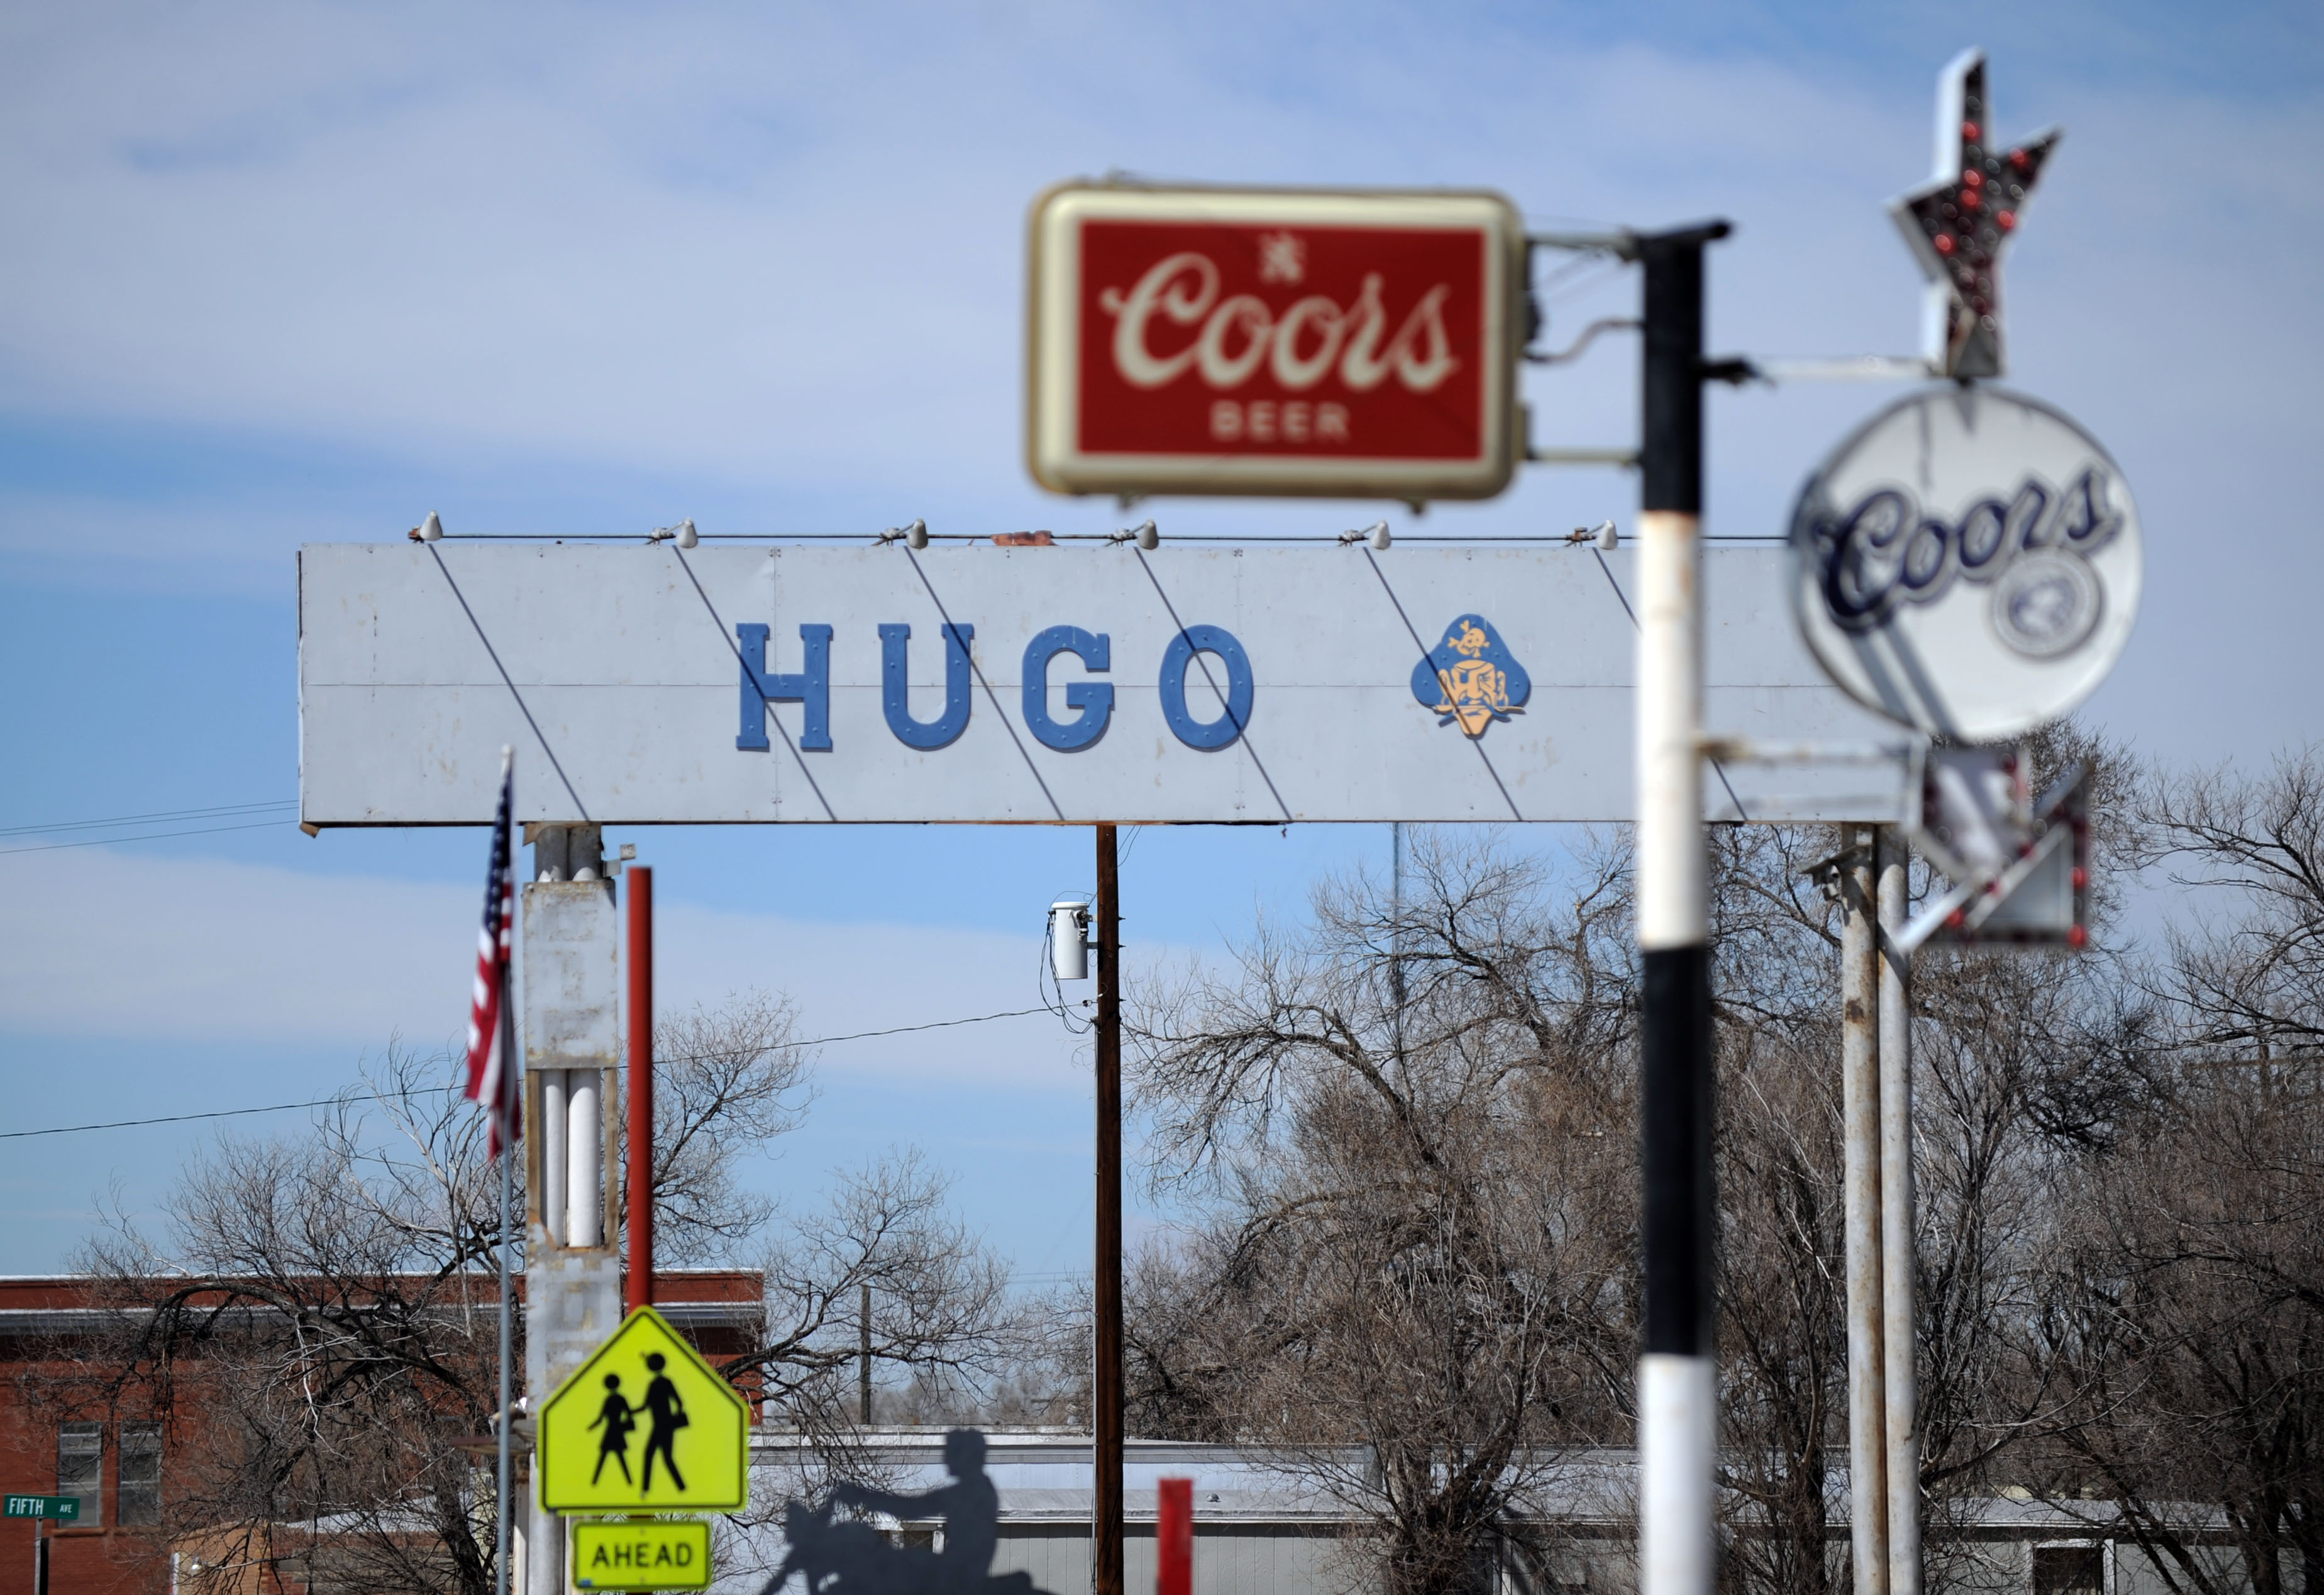 Main street of Hugo. Two elderly people were found dead Wednesday in a home near Hugo after a 16-year-old boy wrecked their truck a few miles away, according to the Colorado Bureau of Investigation. Sheriff's deputies discovered the bodies of a man and a